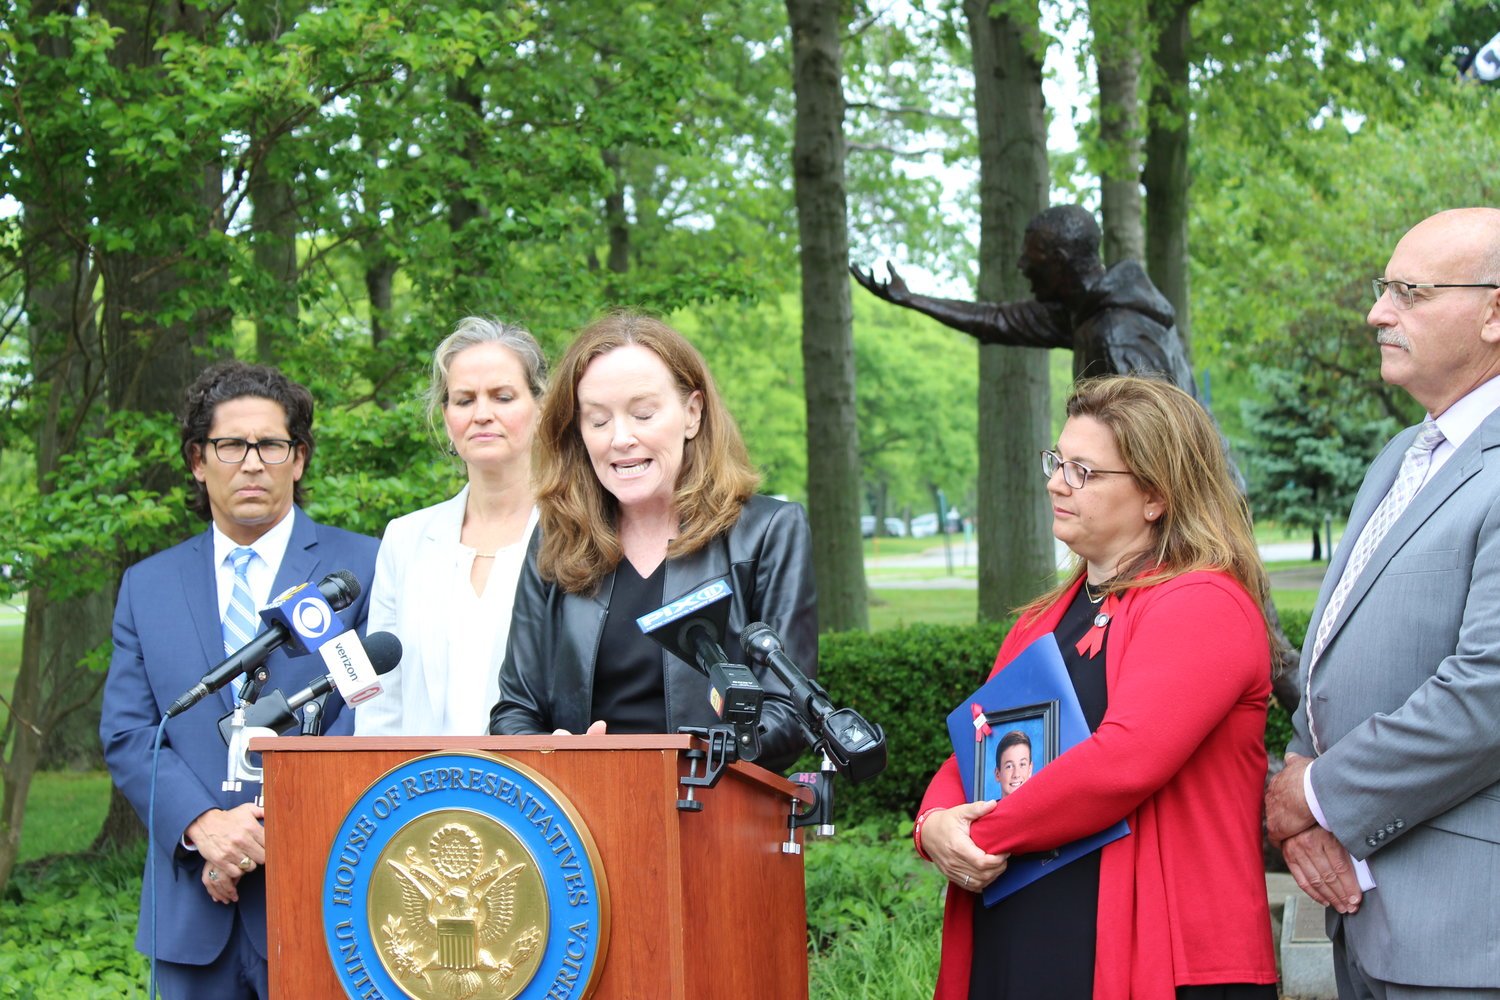 Rep. Kathleen Rice introduced three bills to combat impaired and distracted driving on May 30 at Eisenhower Park. She was with Steve Chassman, the executive director of Long Island Council on Alcoholism & Drug Dependence, Nassau County Executive Laura Curran, Alisa McMorris, of Wading River, and Richard Mallow, the executive director of Mothers Against Drunk Driving.